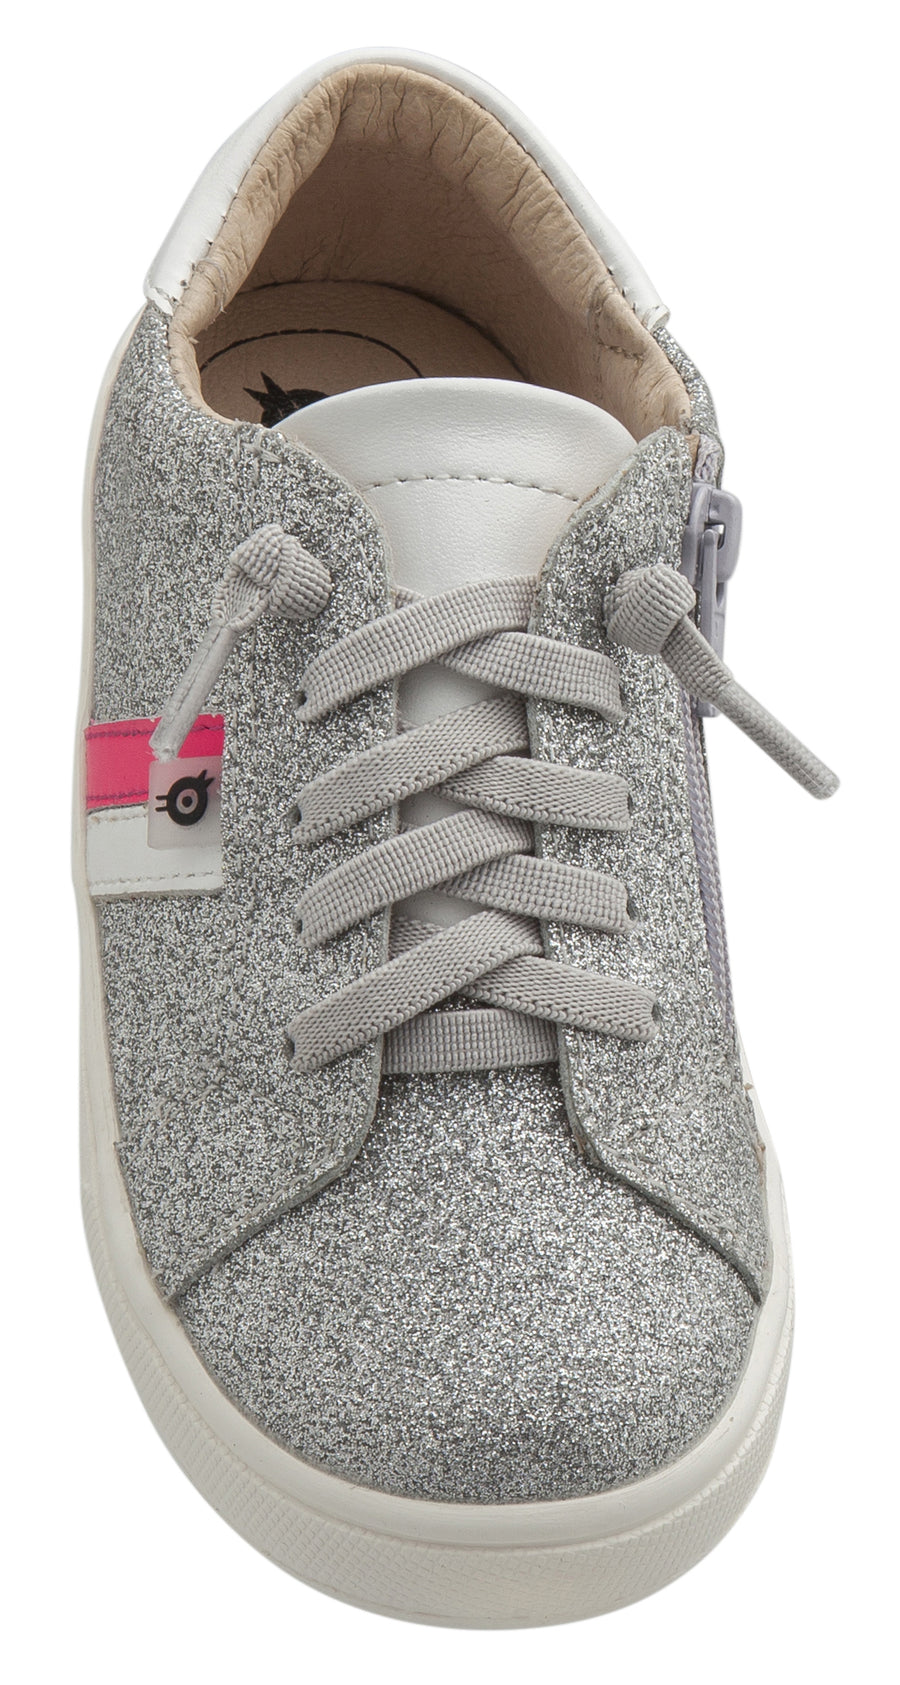 Old Soles Girl's Glambo Leather Sneakers, Glam Argent/Snow/Neon Pink/Silver